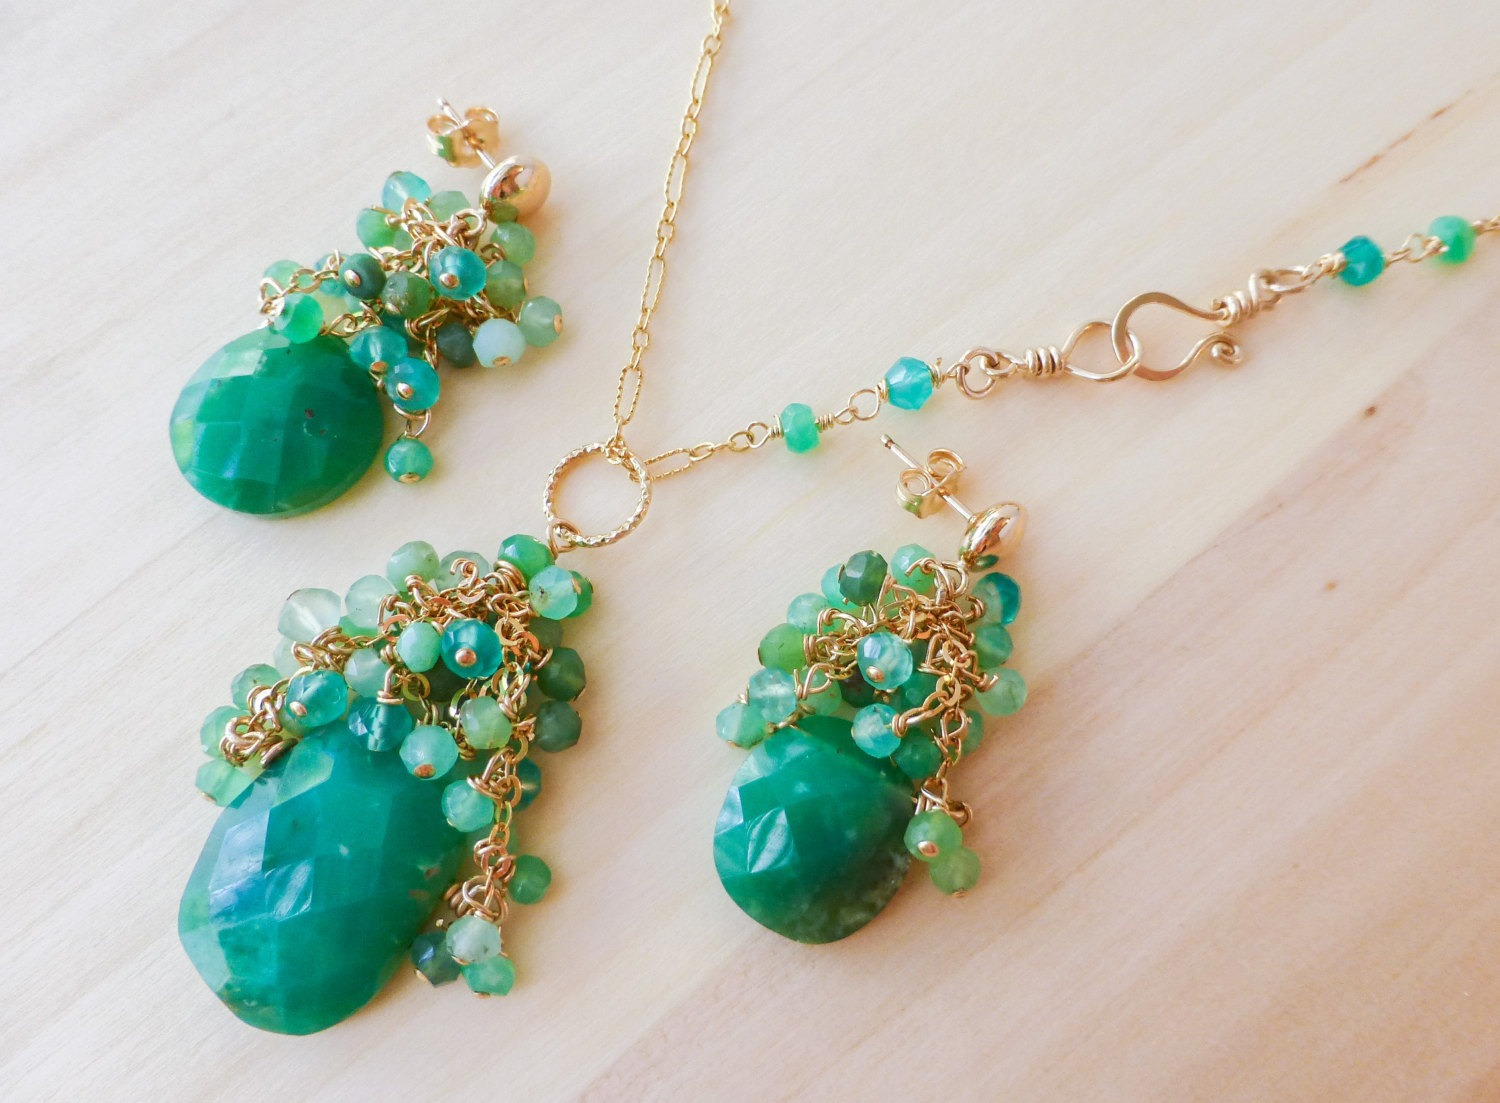 Green chrysoprase necklace and earrings in gold filled for Gold filled jewelry